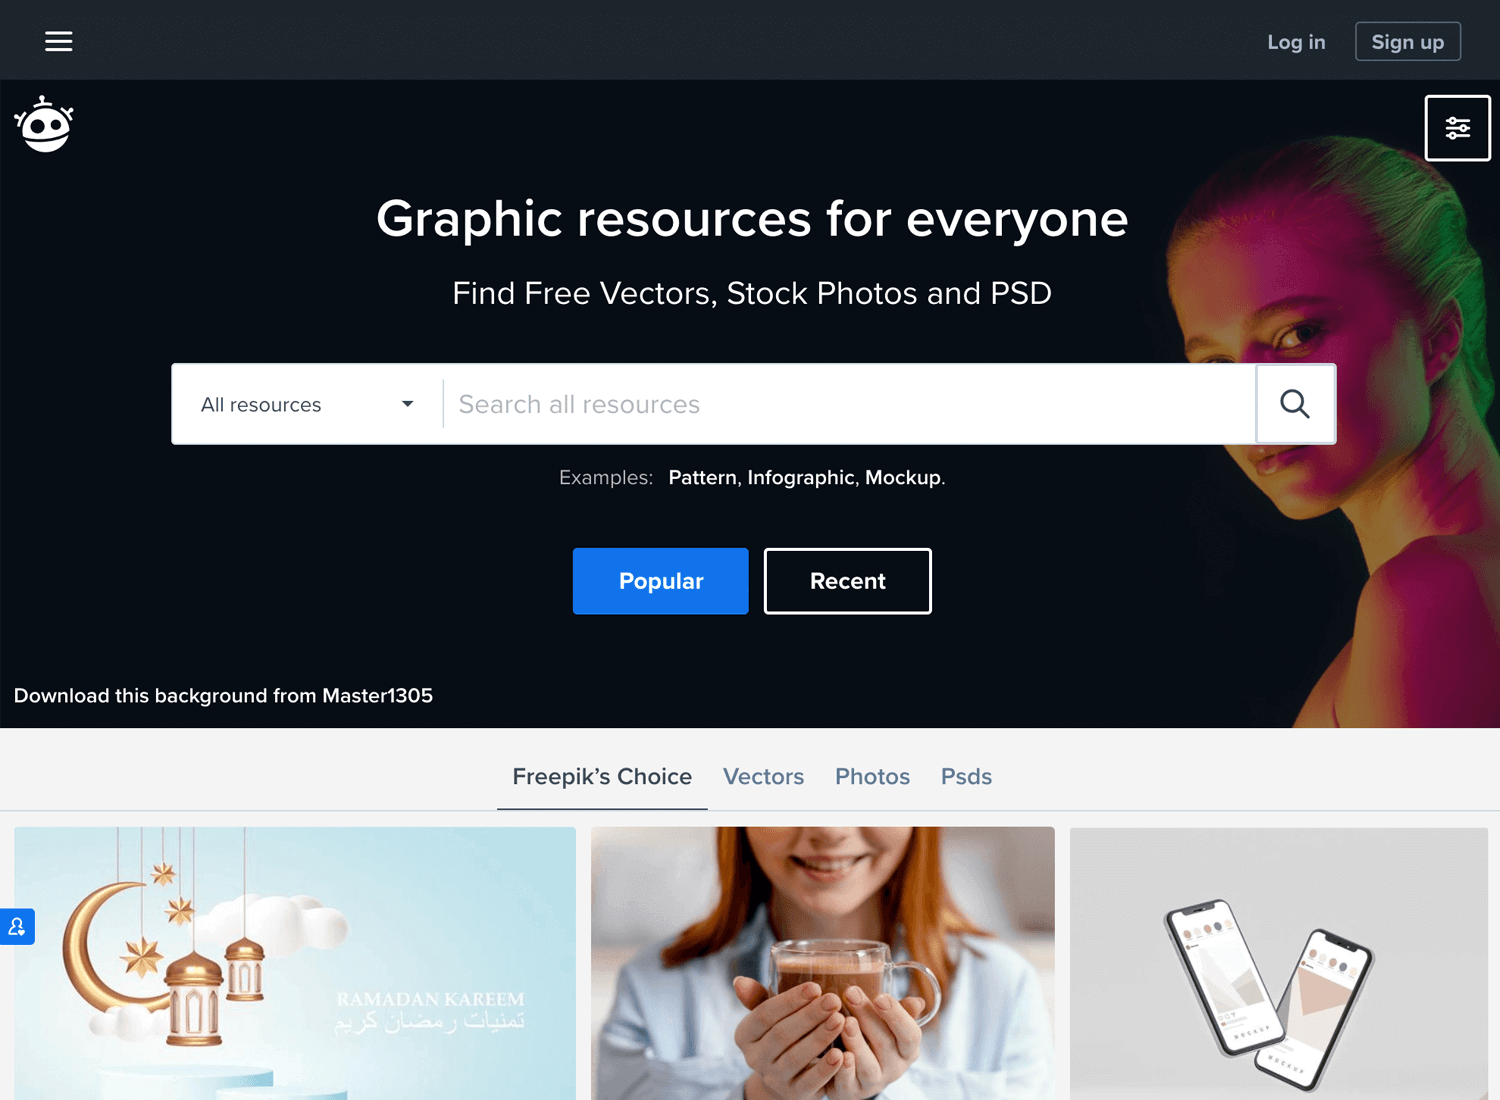 freepik as place for free resources